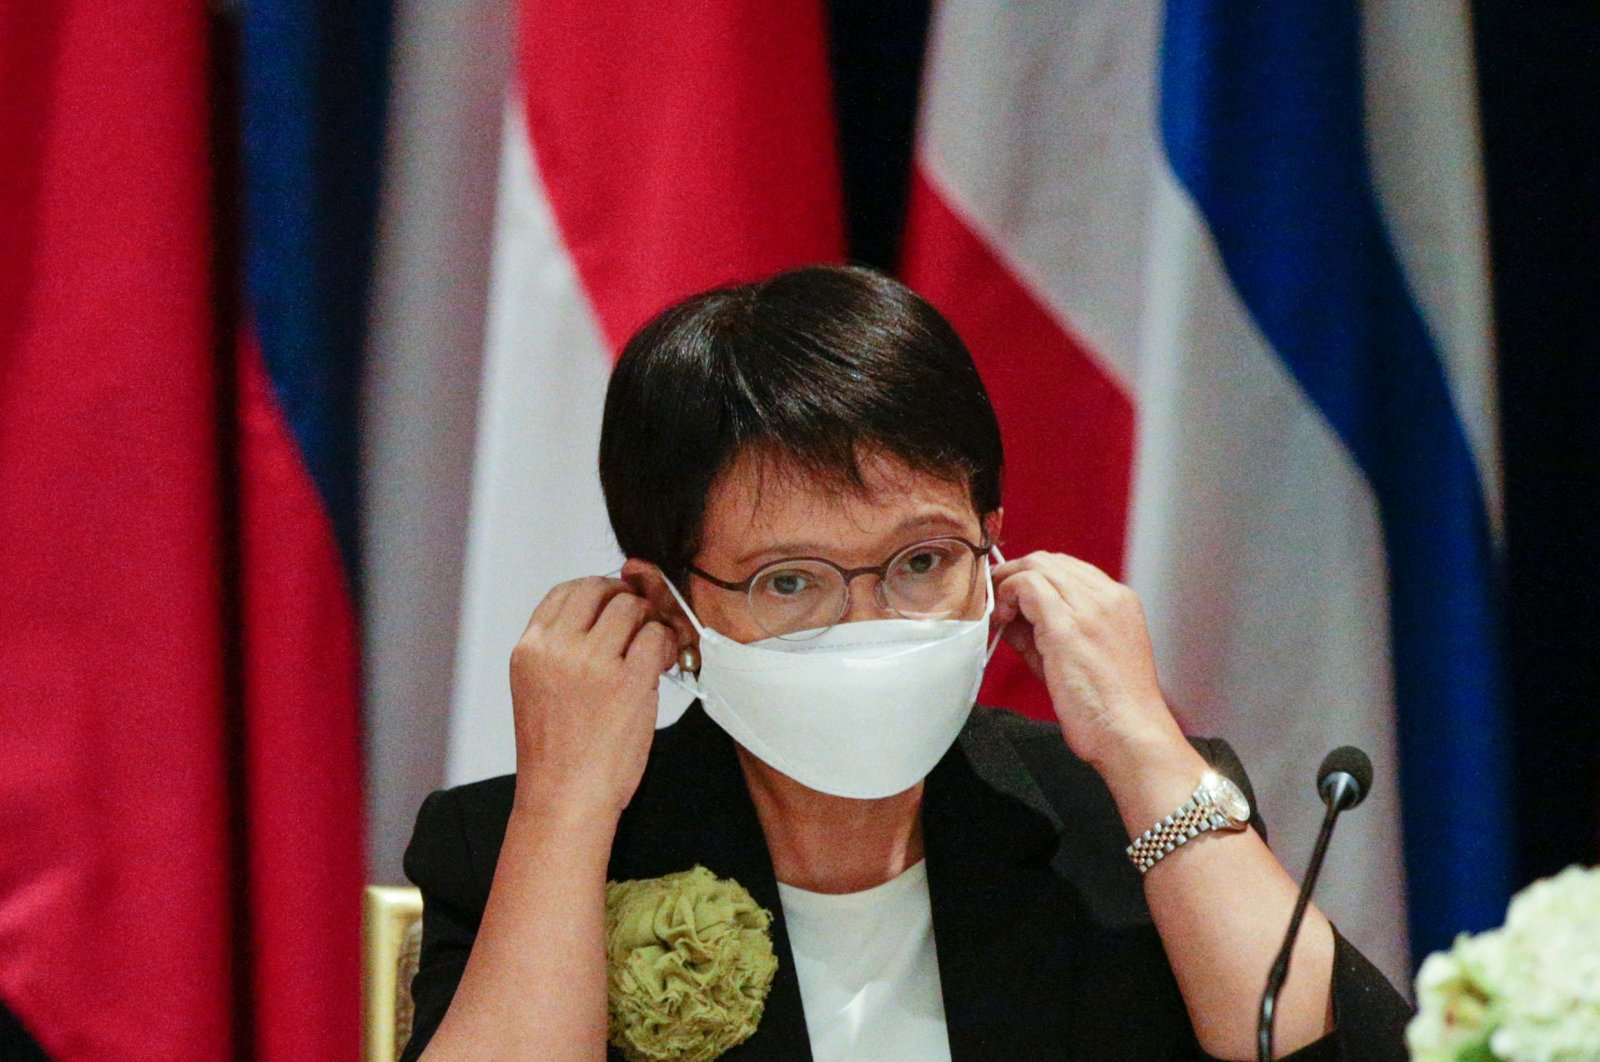 Indonesian Foreign Minister Retno Marsudi attends a meeting with foreign ministers of the ASEAN nations in New York, U.S., Sept. 23, 2021. (AFP Photo)